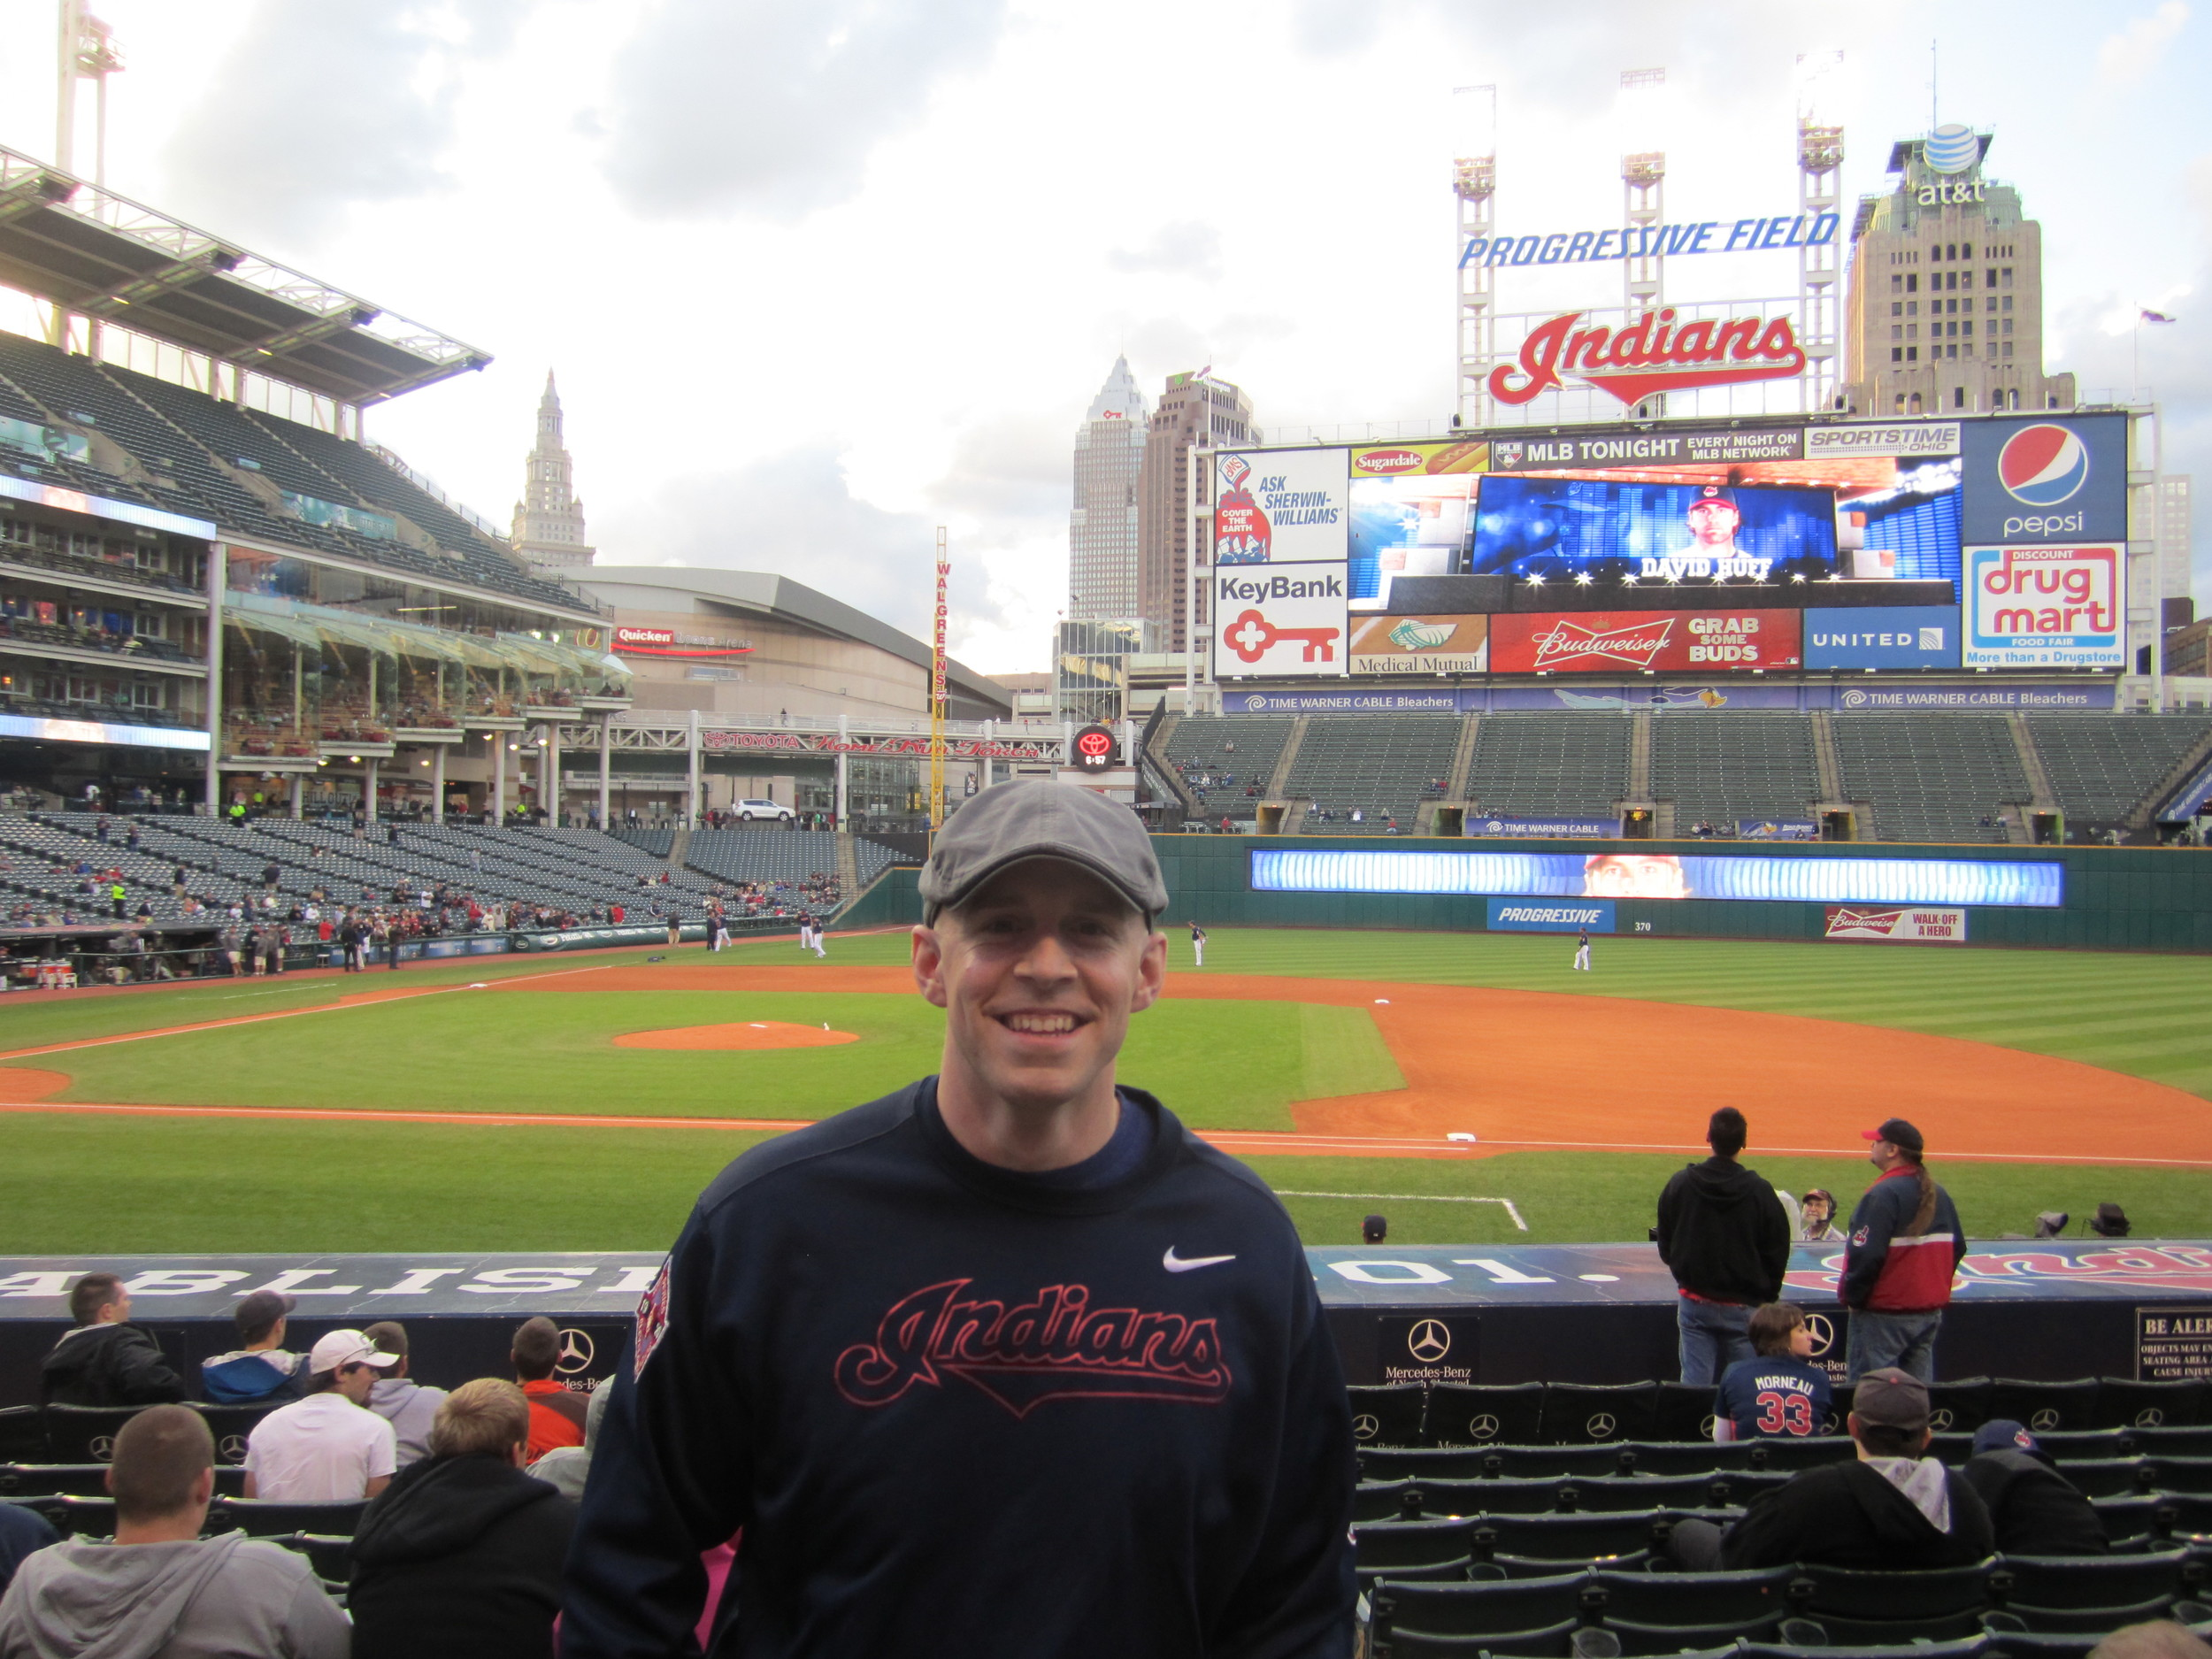 Mike attends Cleveland Indians baseball games annually as a way to feel close to his son.